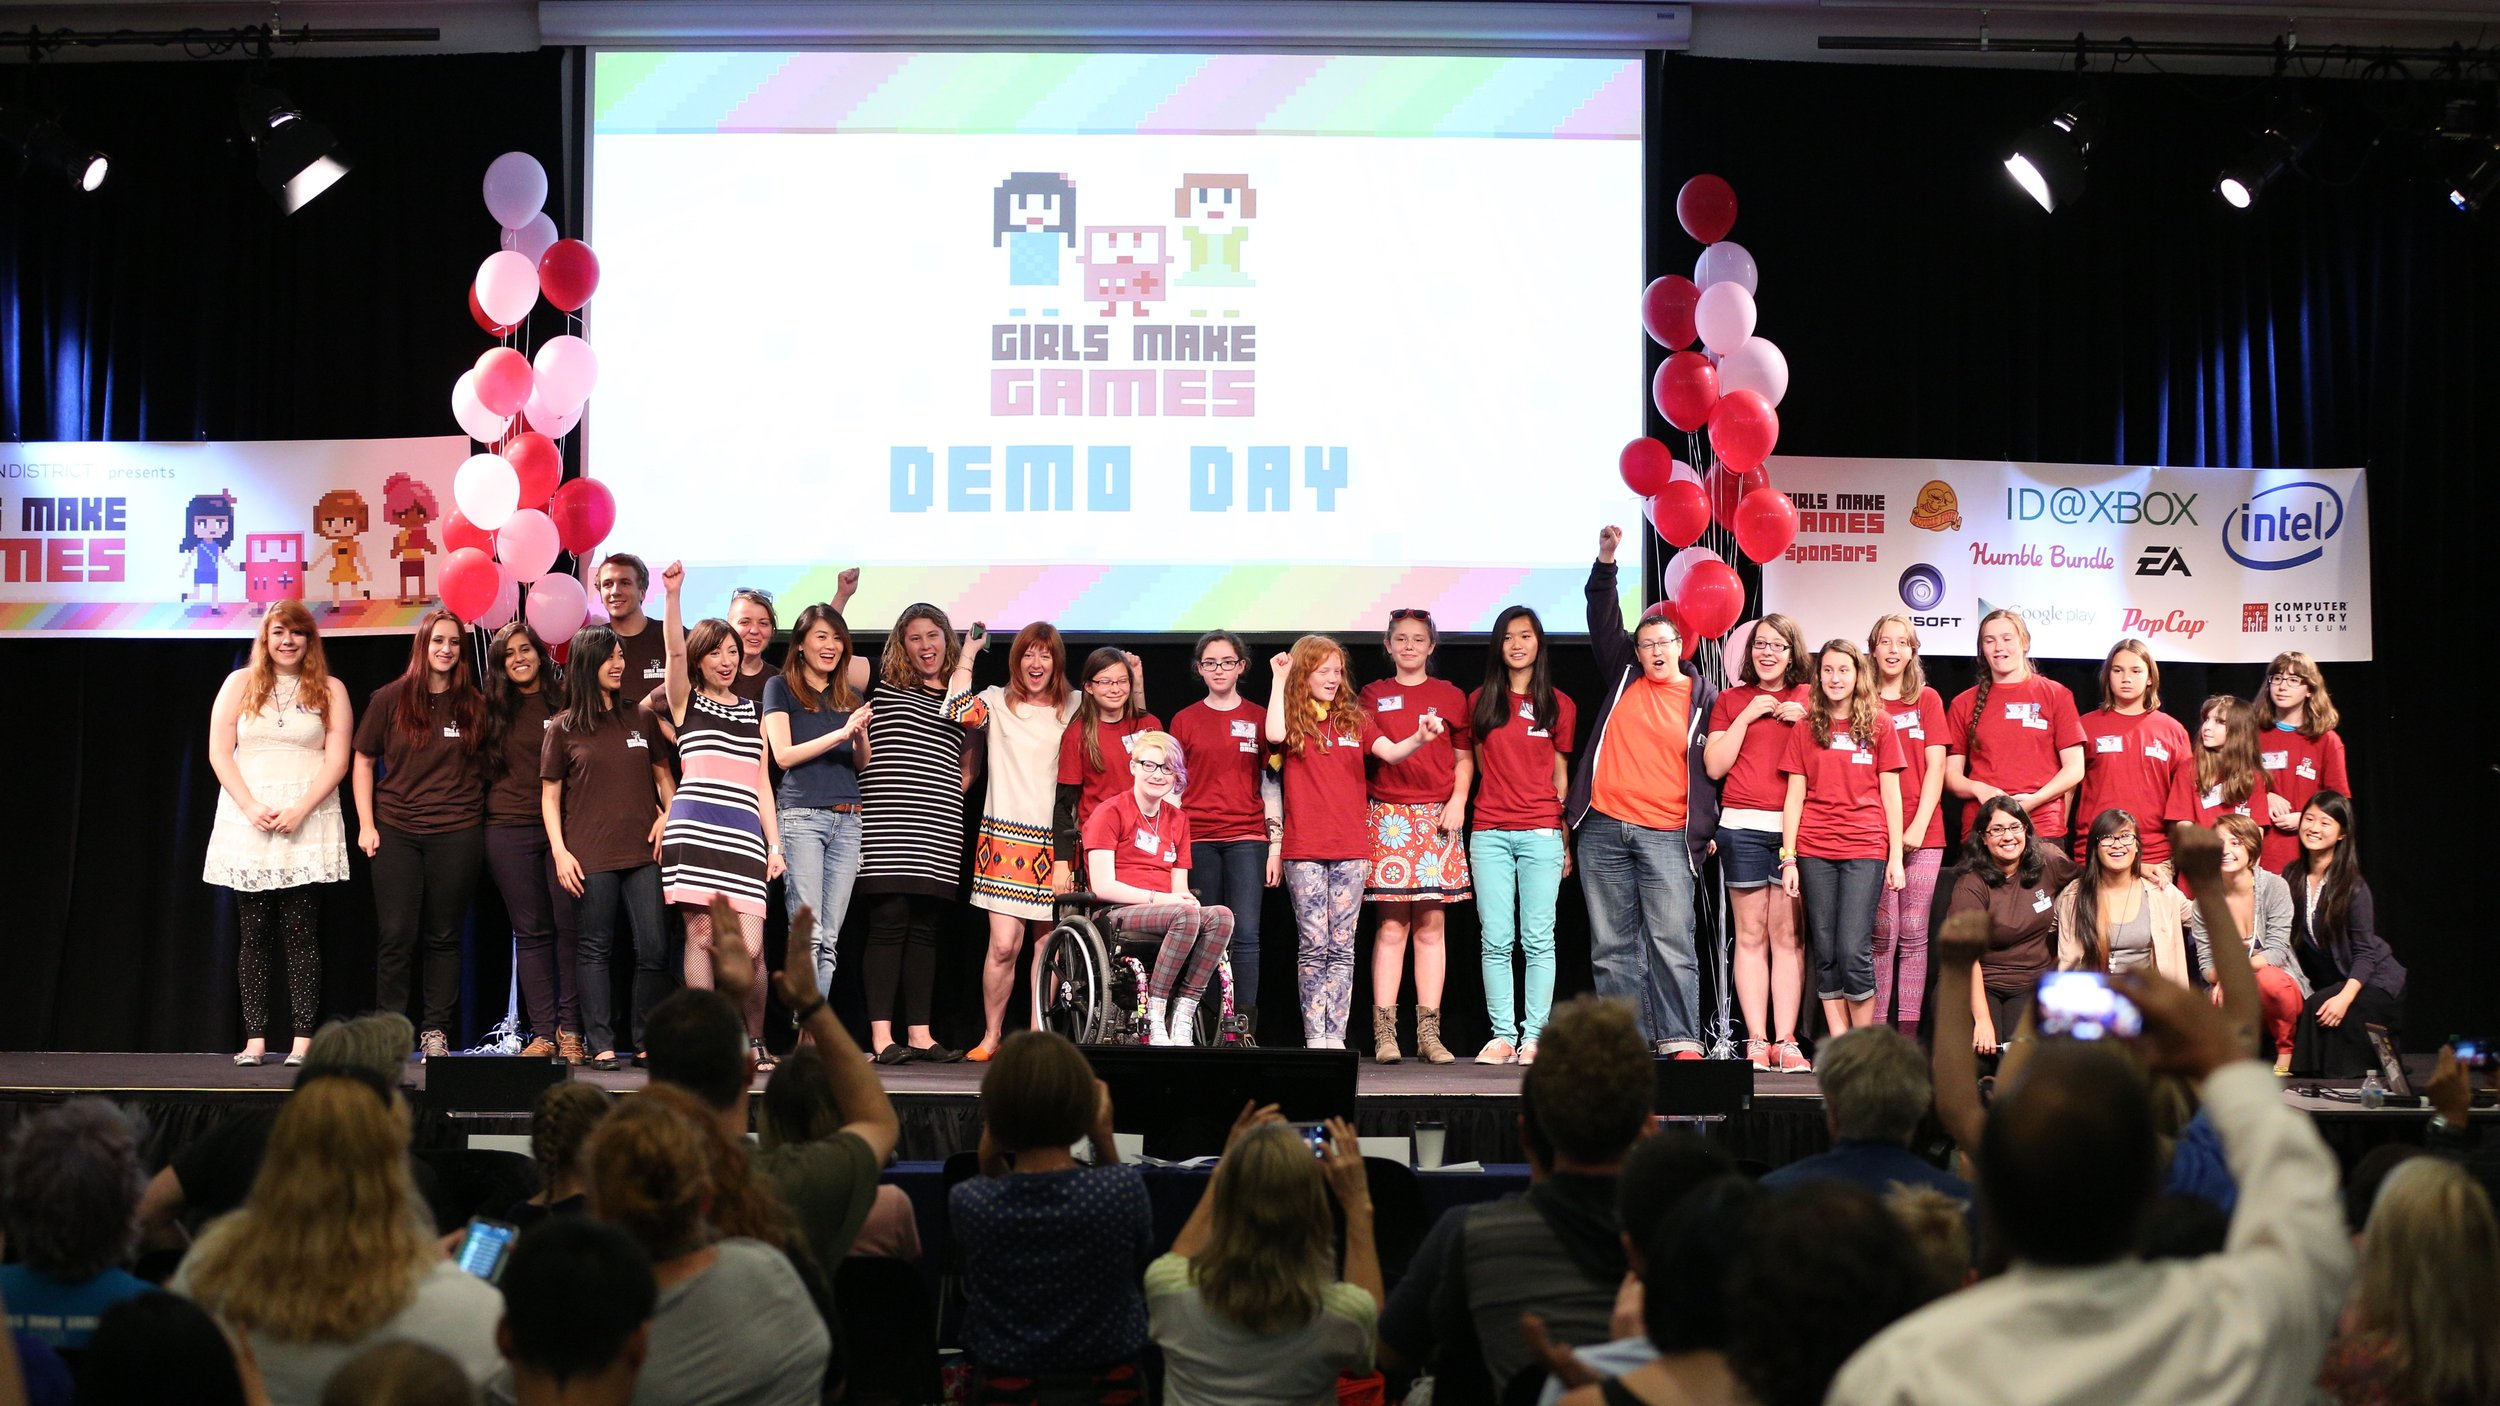 demo day 2015 interfectorem e3.jpg